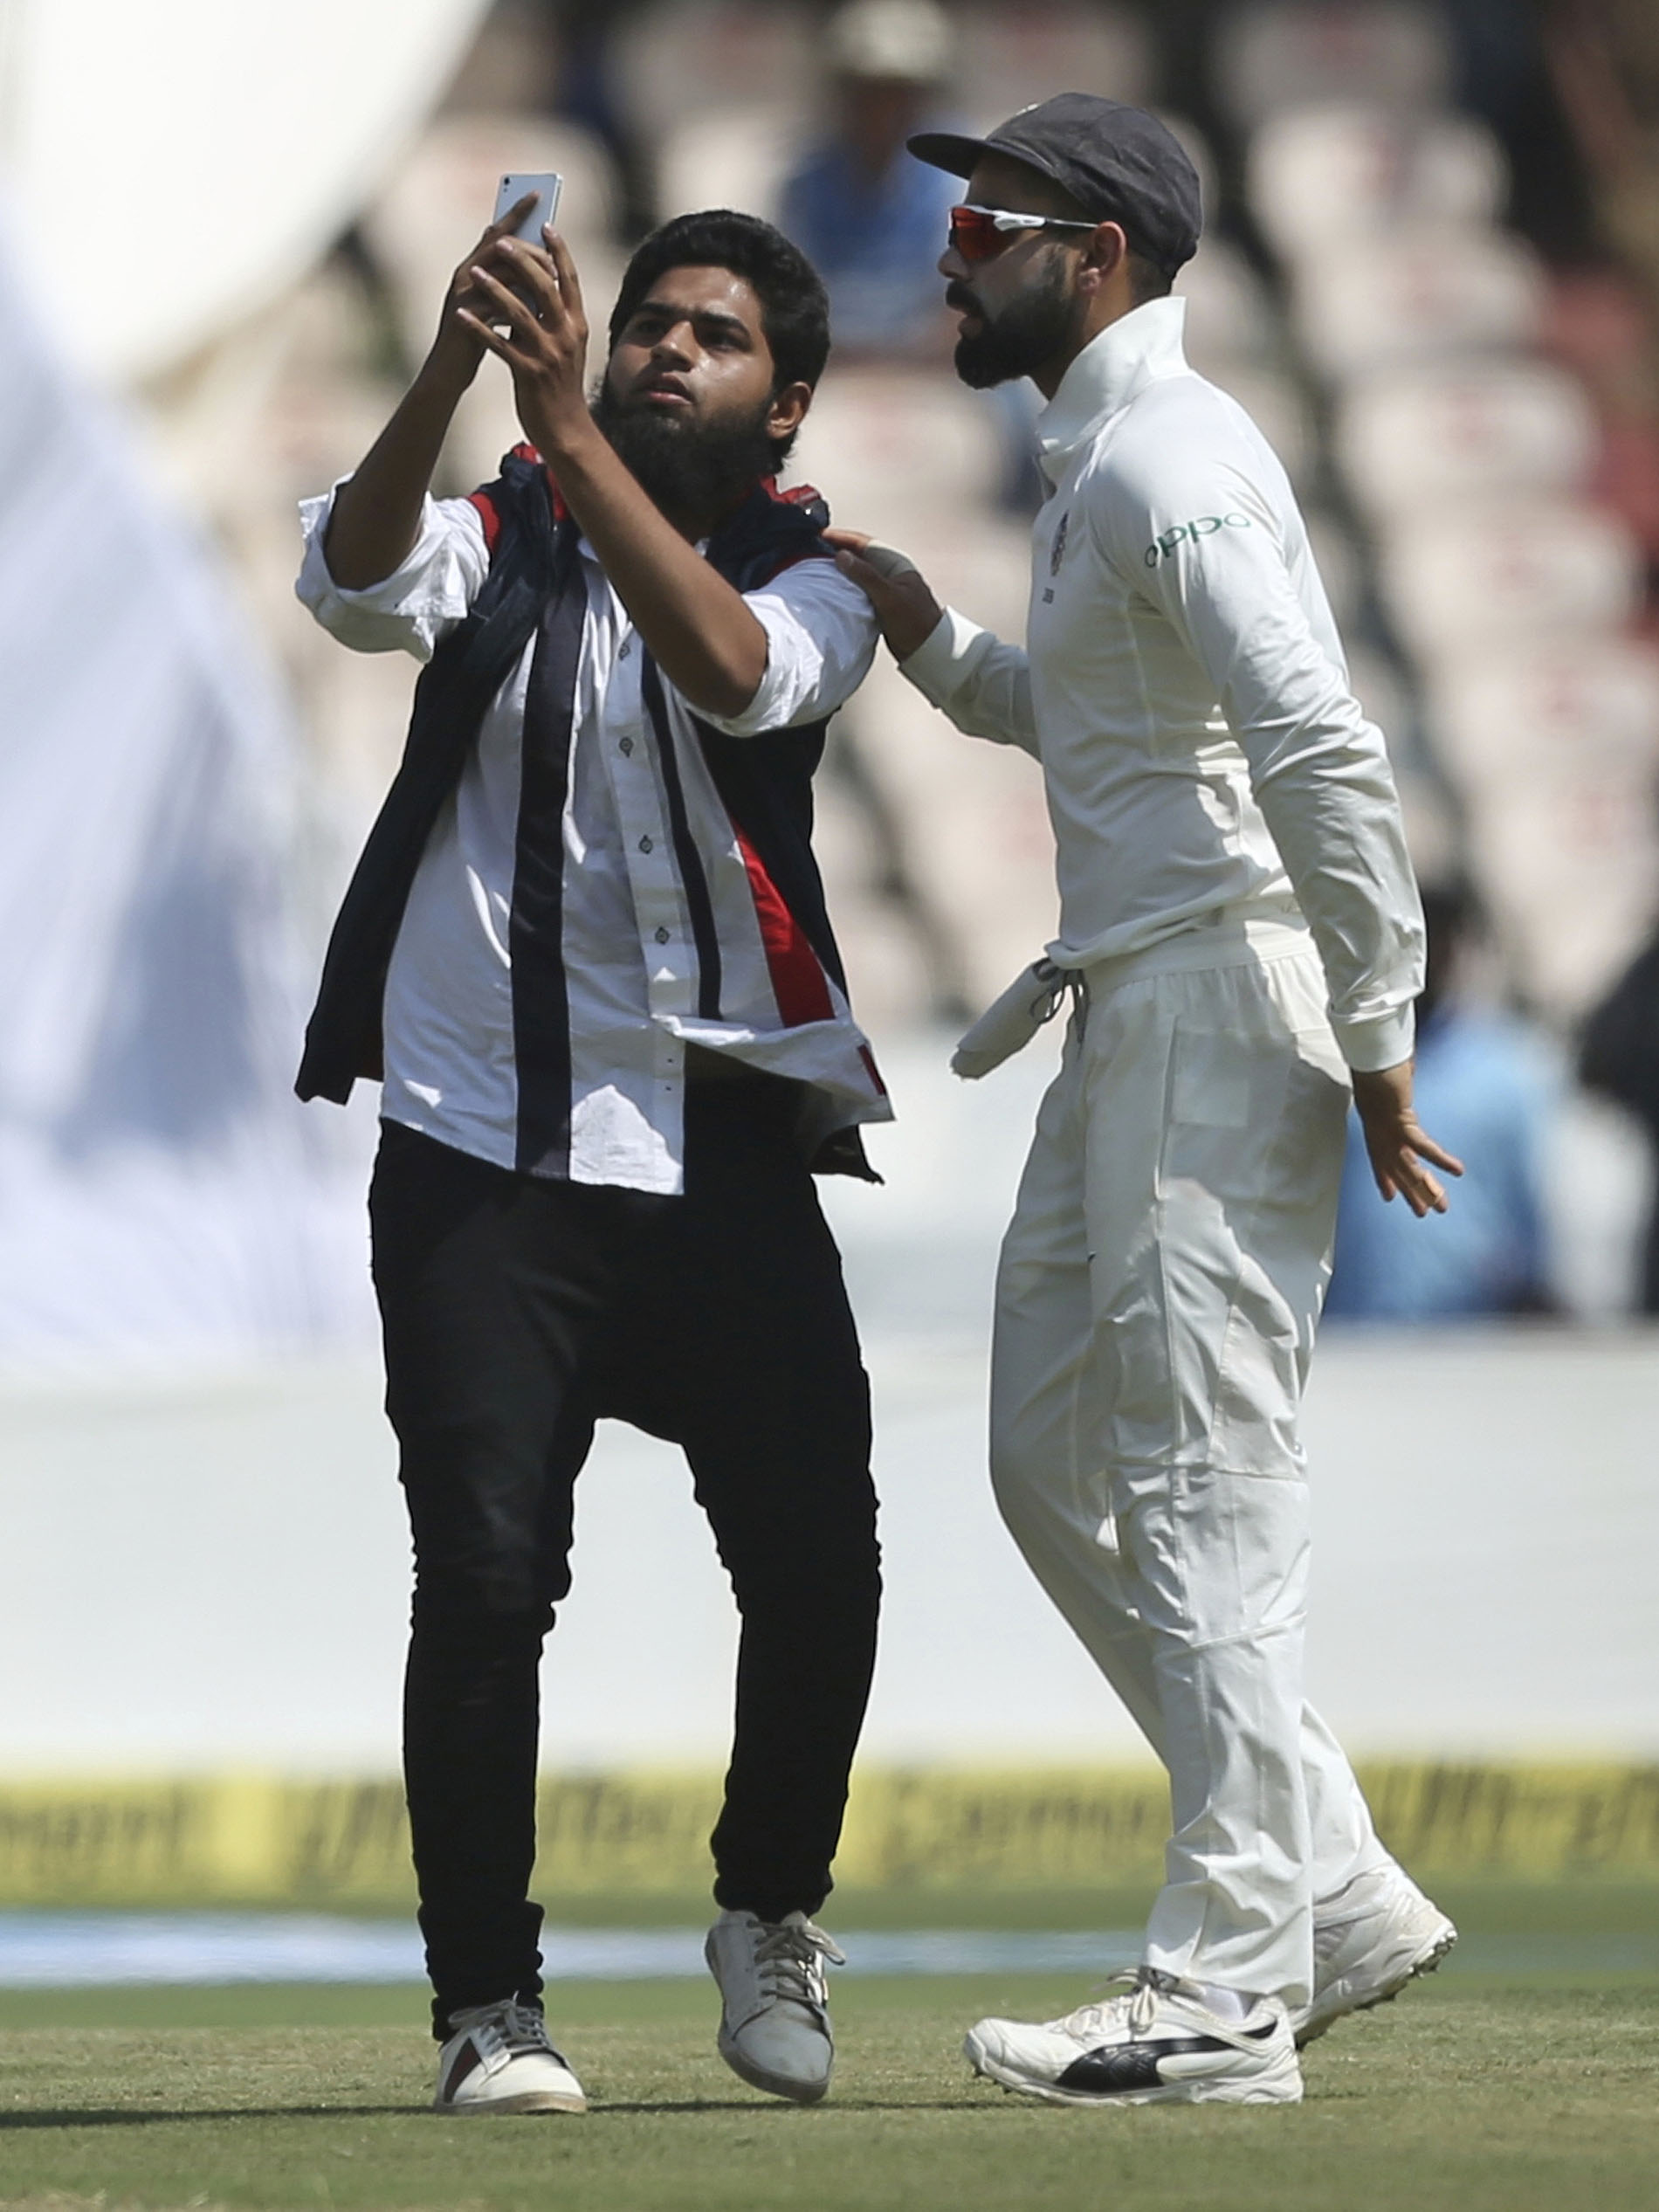 The fan attempts to take a precious selfie with Kohli // AAP